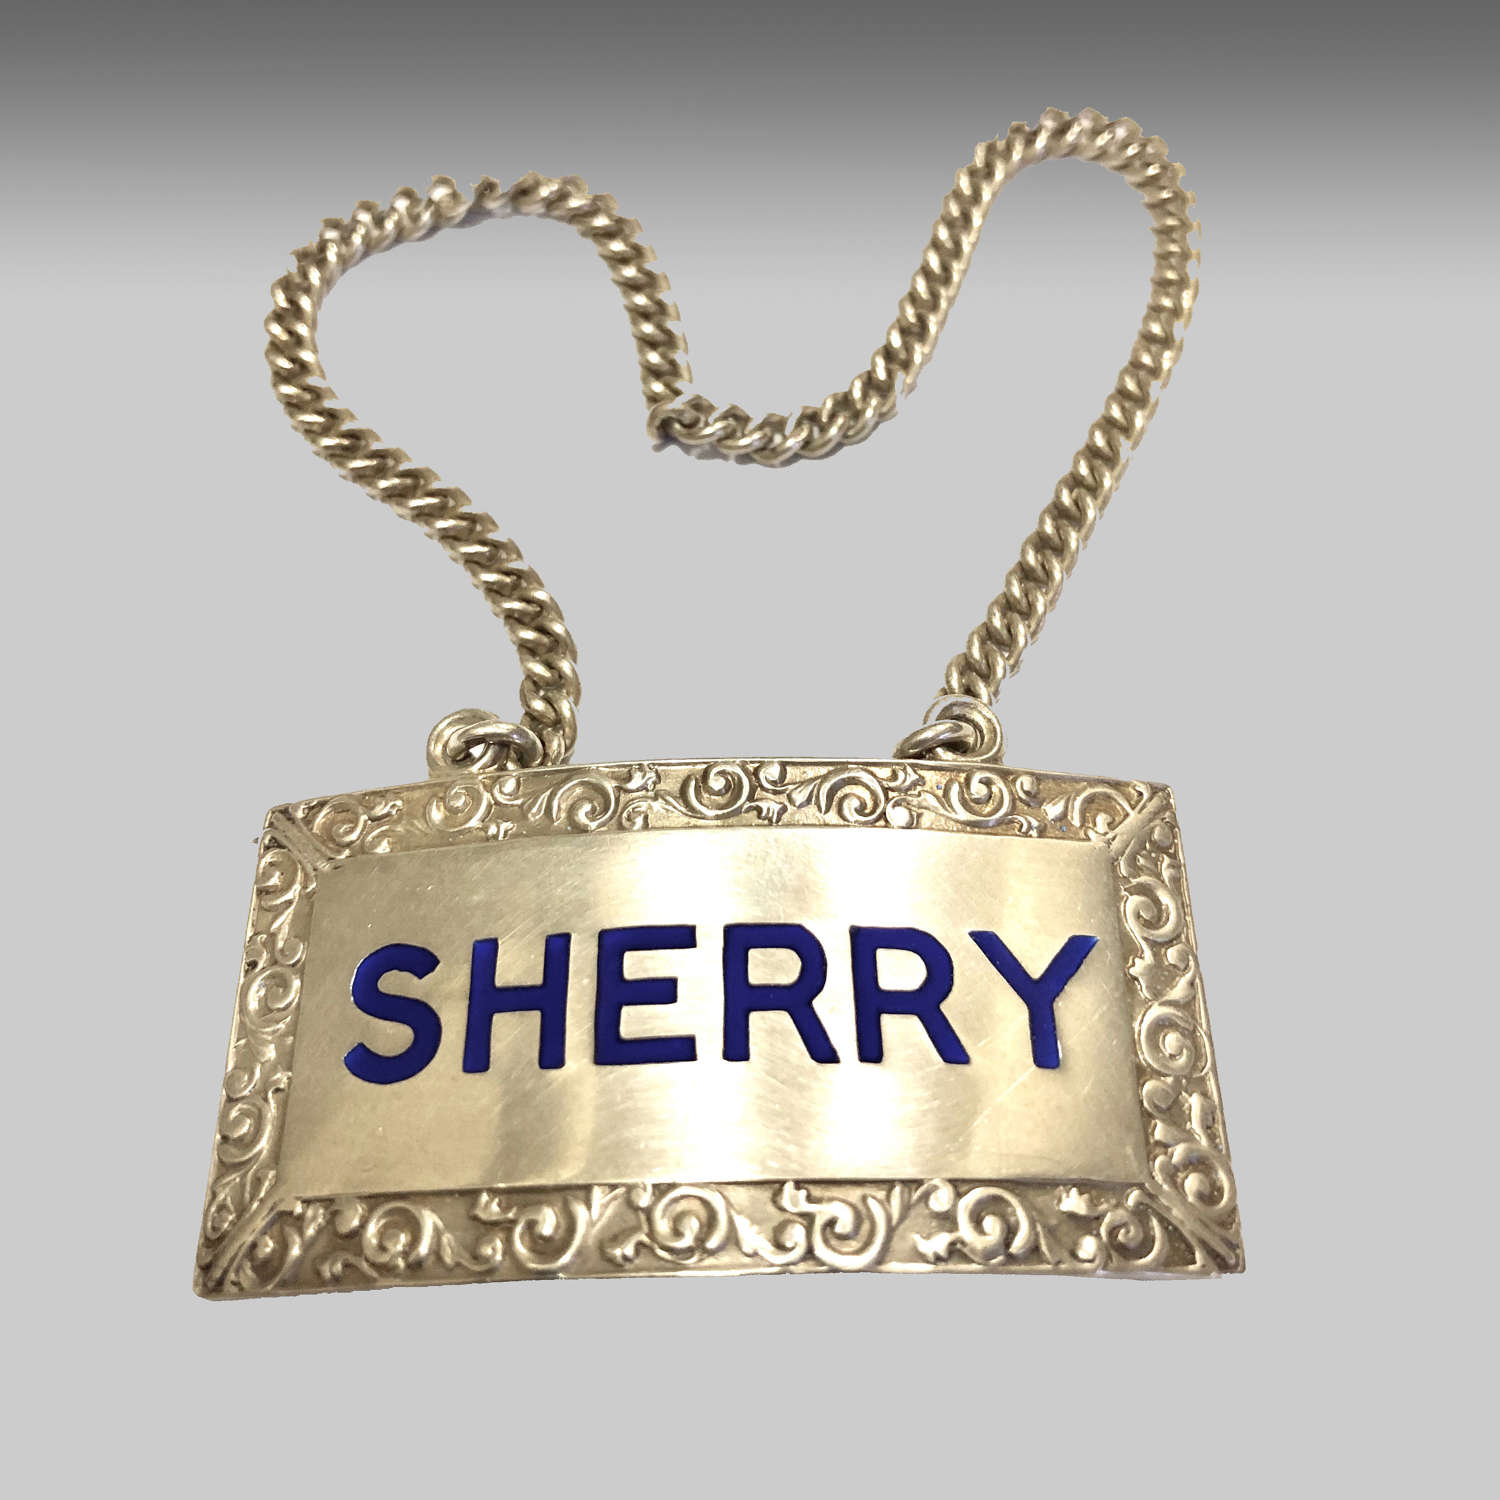 Vintage silver sherry decanter label